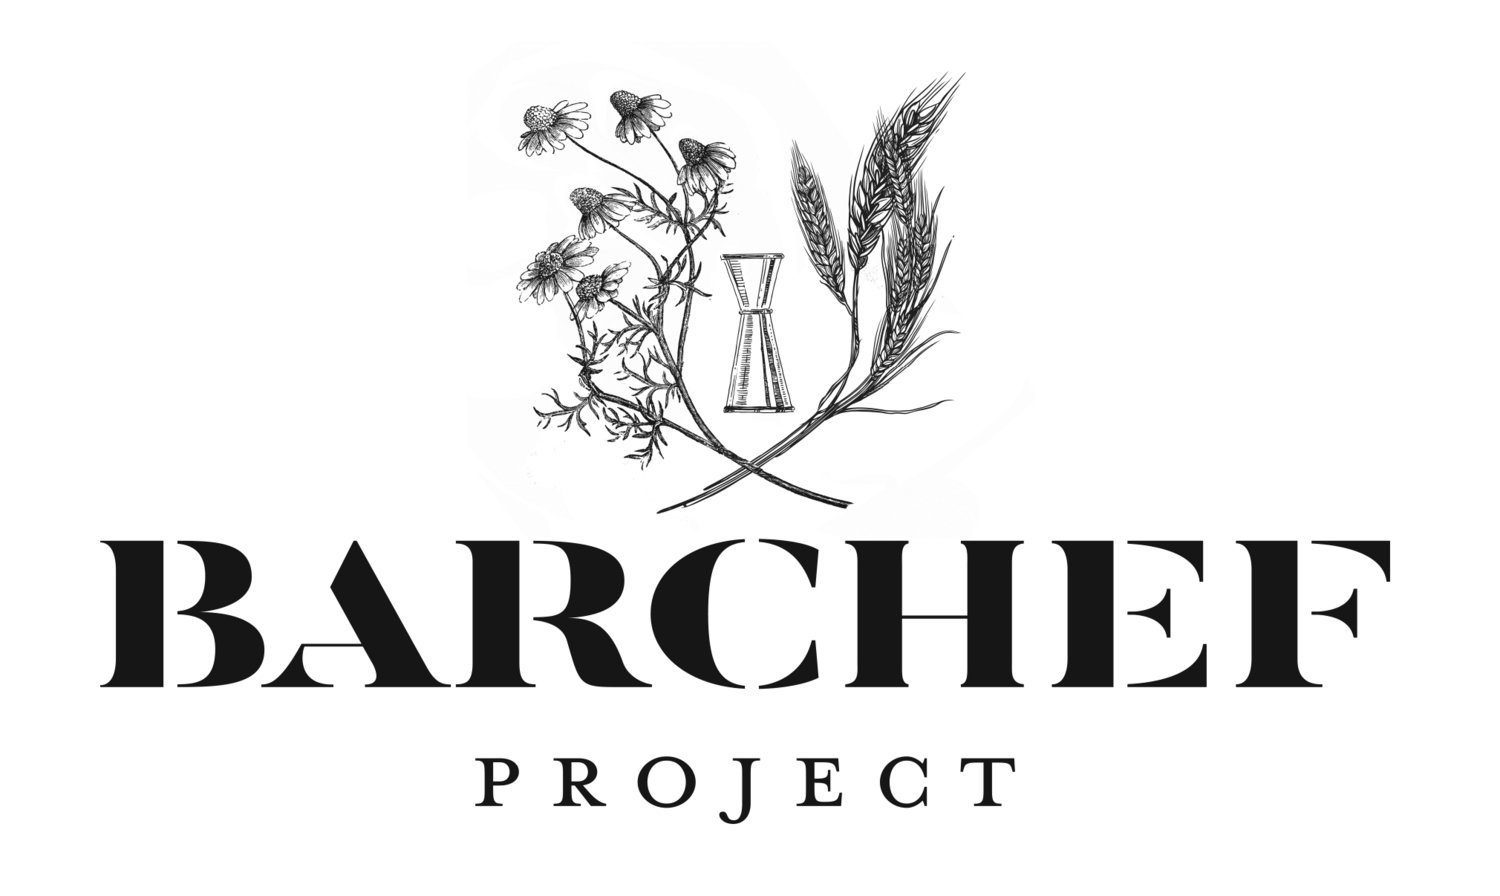 The Barchef Project